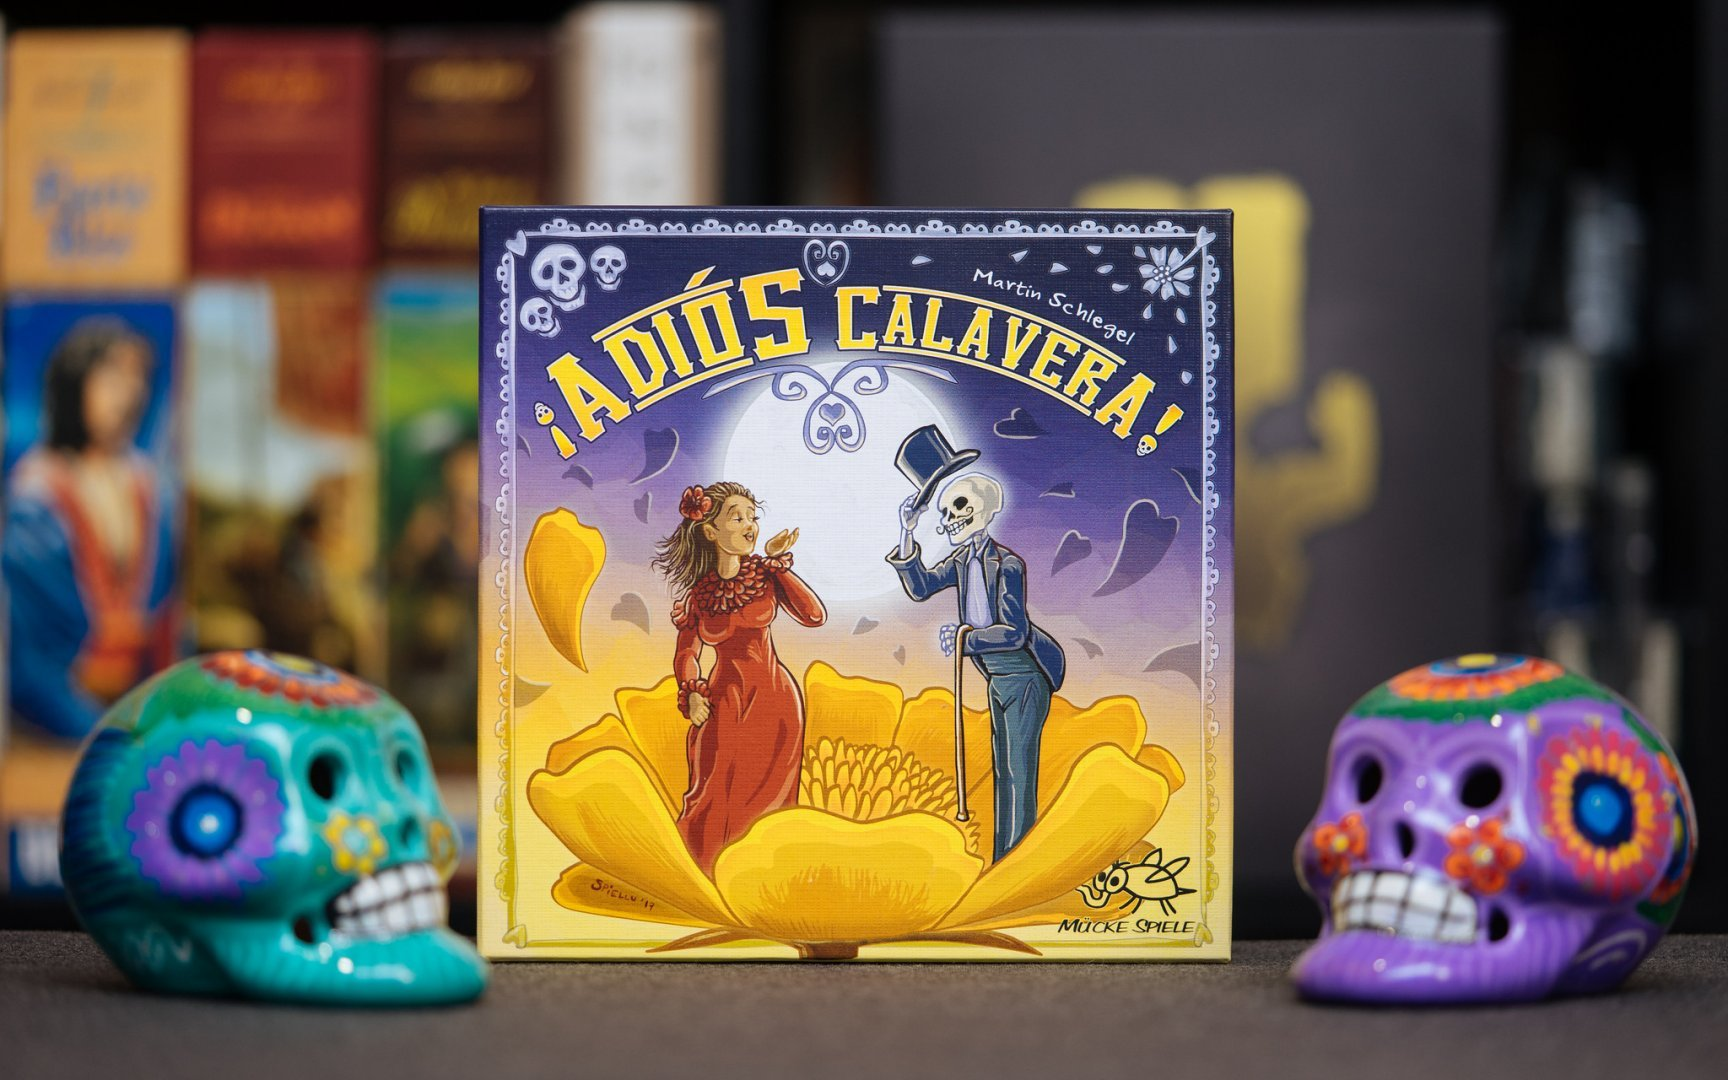 ¡ADIÓS CALAVERA! 3 PLAYER EXPANSION